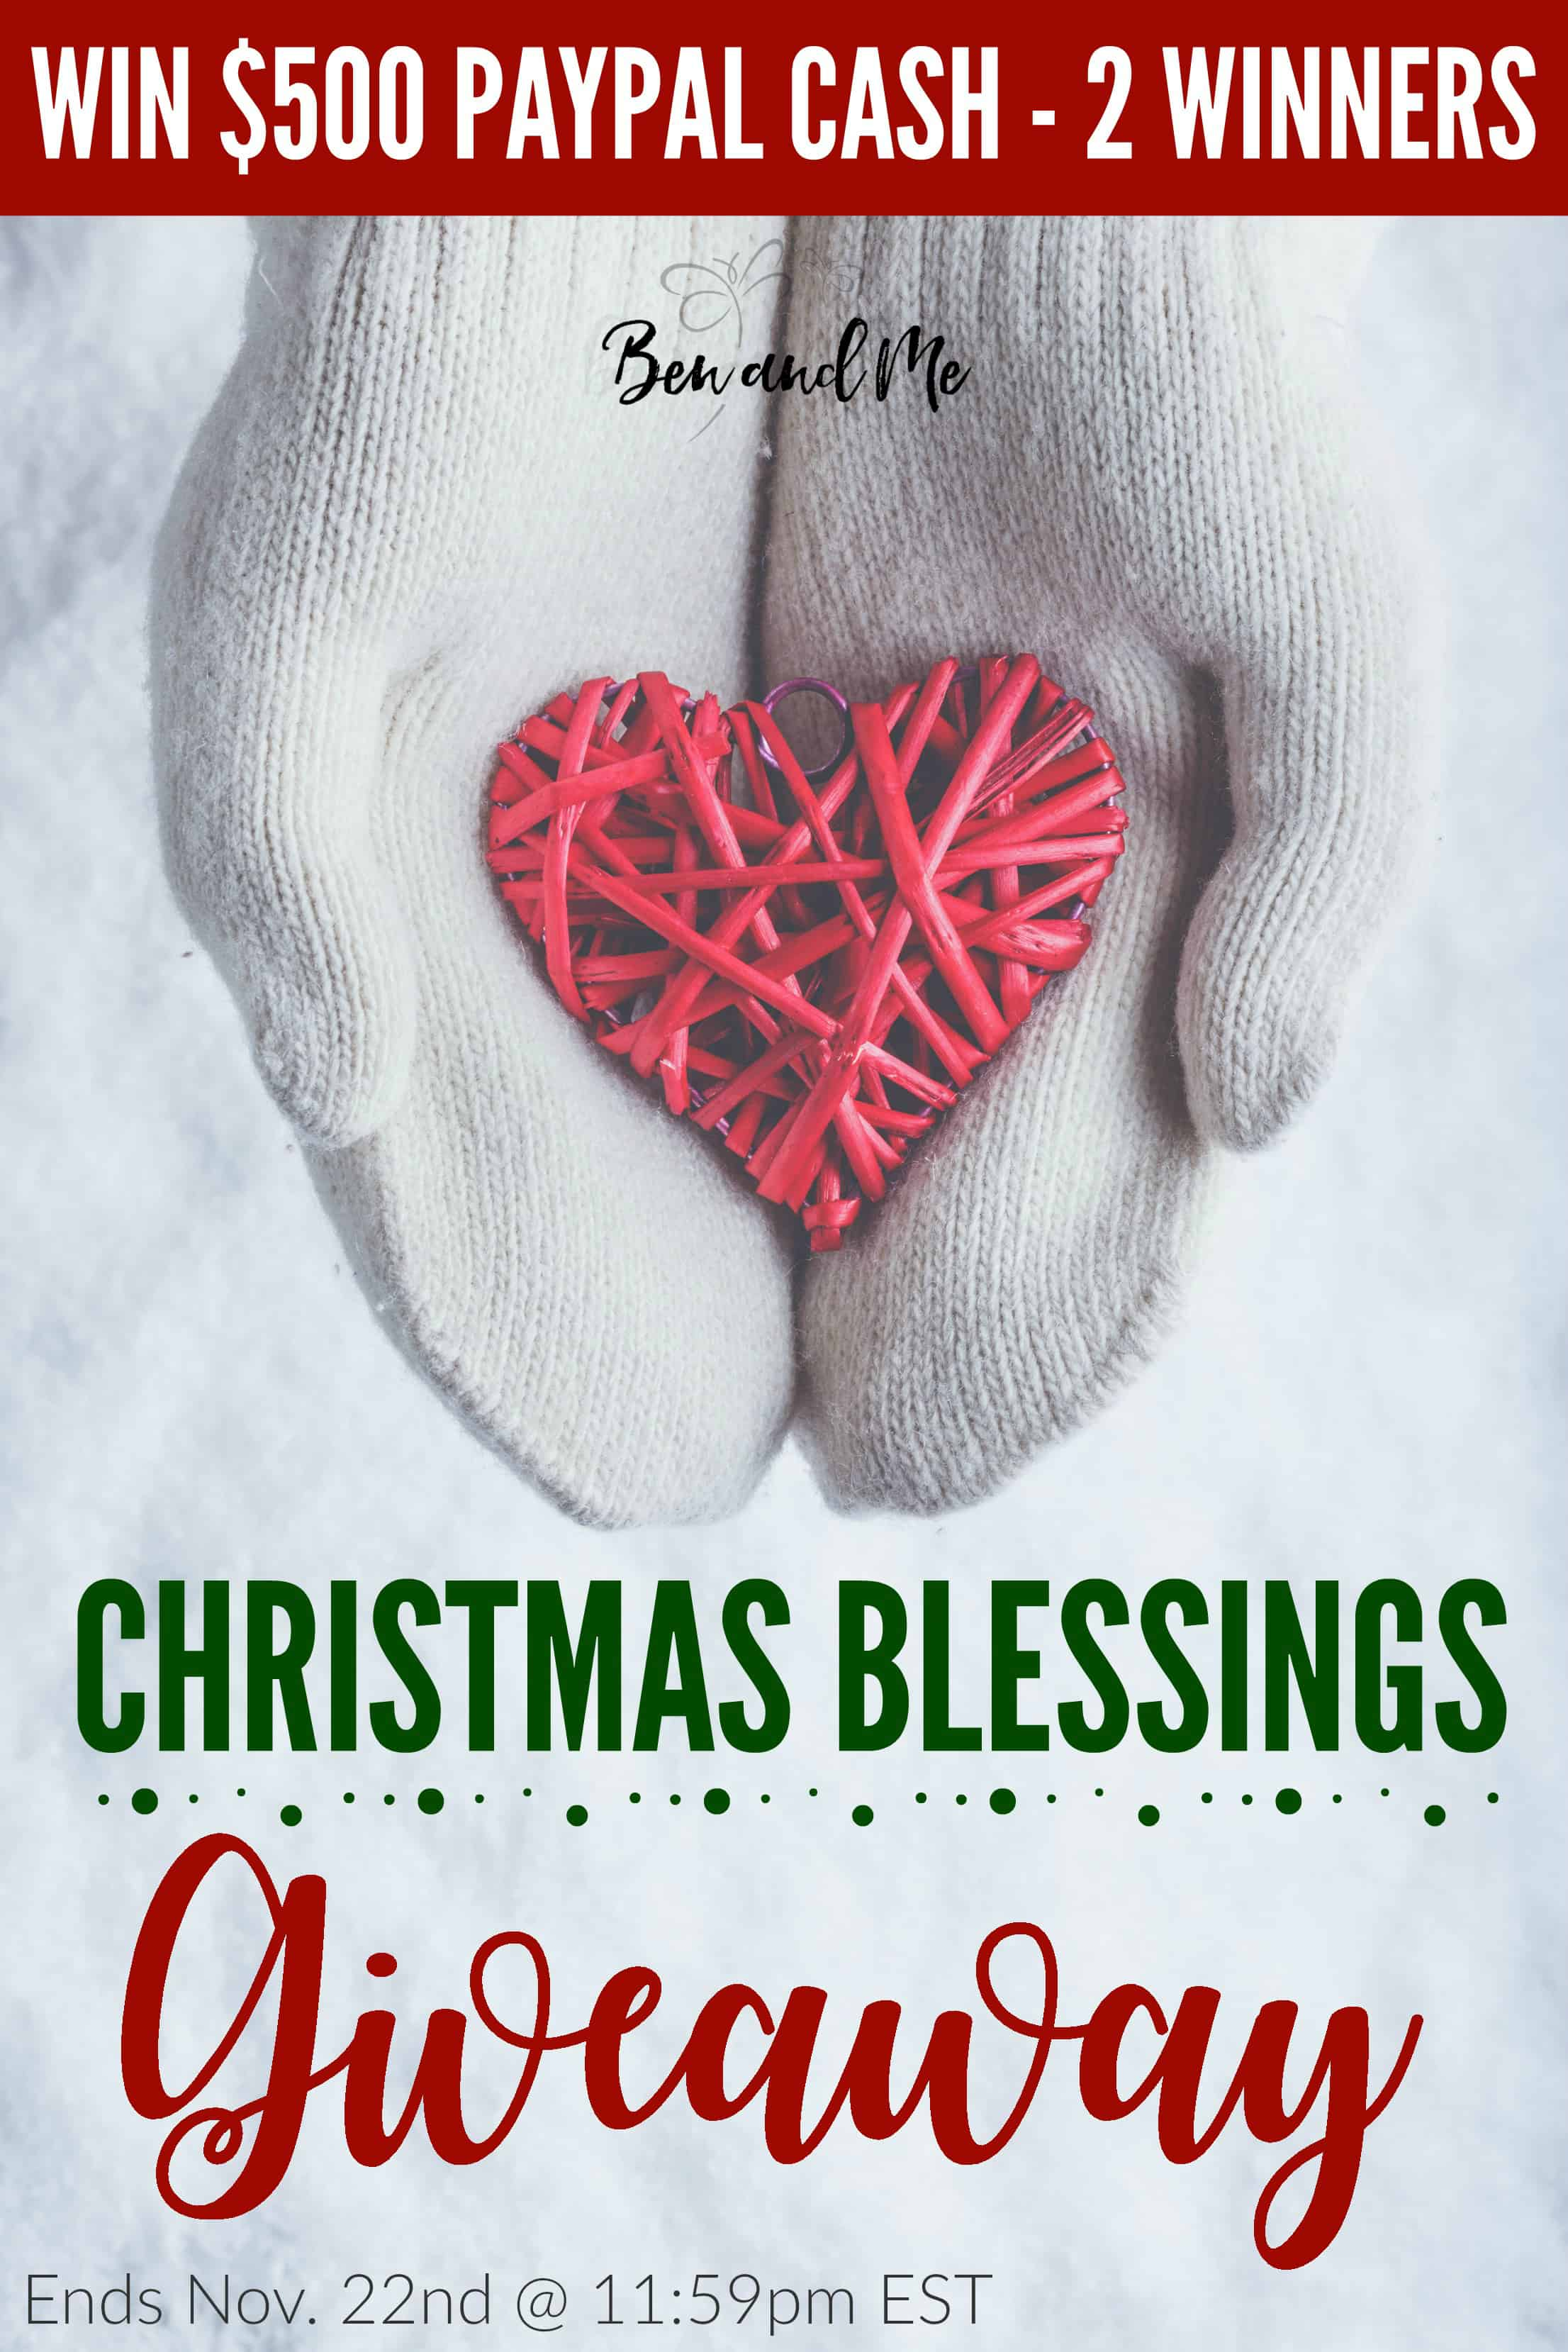 I have partnered with 22 other bloggers to give TWO families $500 Paypal cash in the 4th annual Christmas Blessings Giveaway!